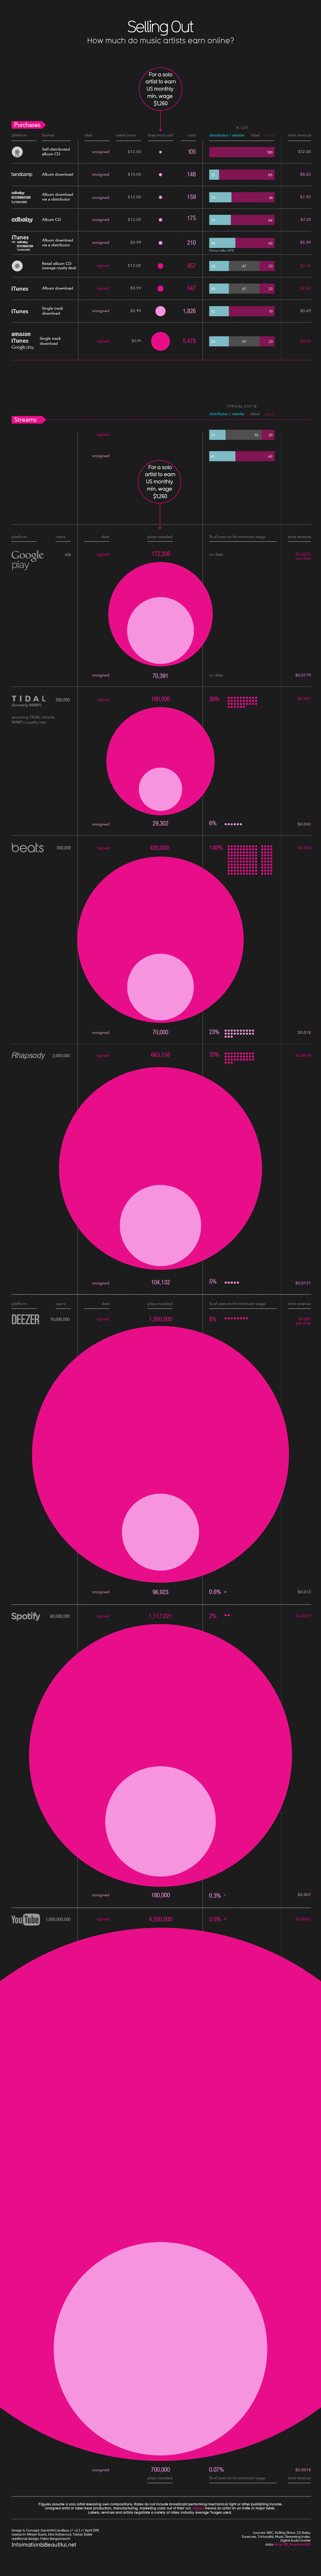 This infographic shows how much music artists make in 2015